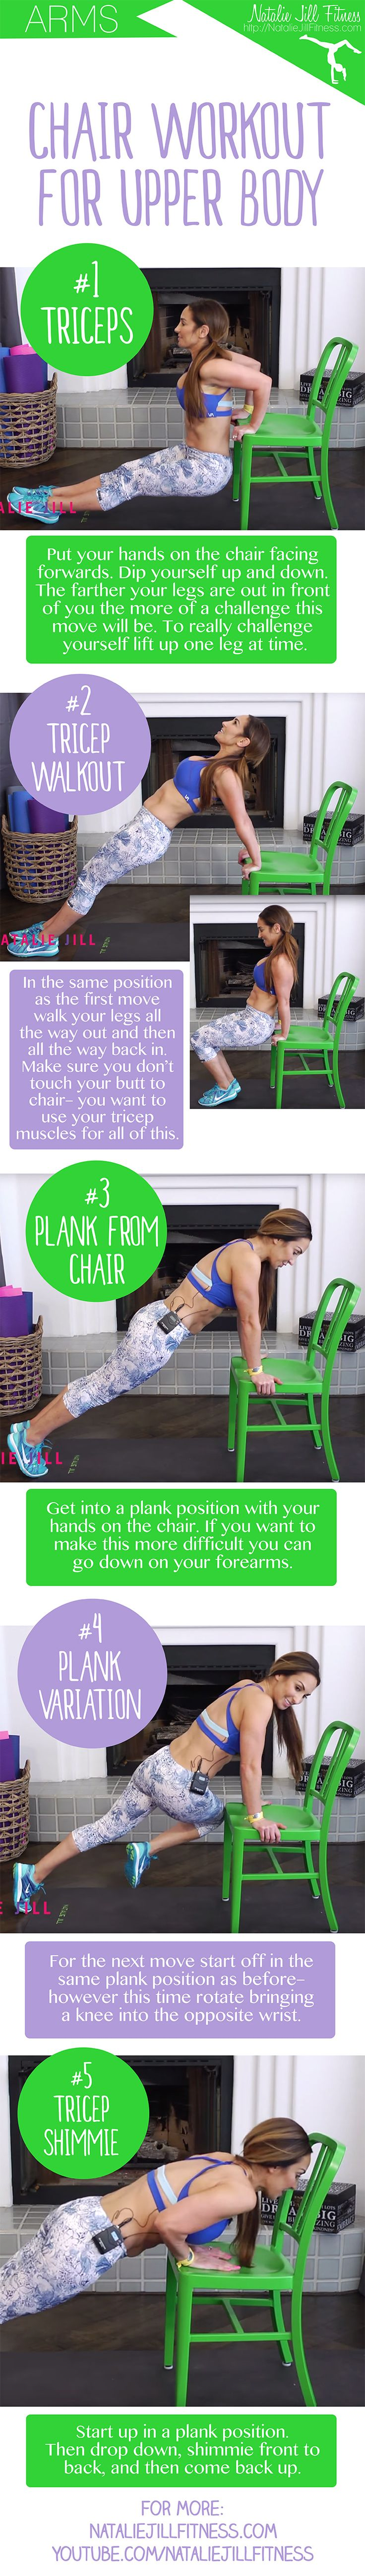 115 best Printable Workout Cards from Natalie Jill Fitness images